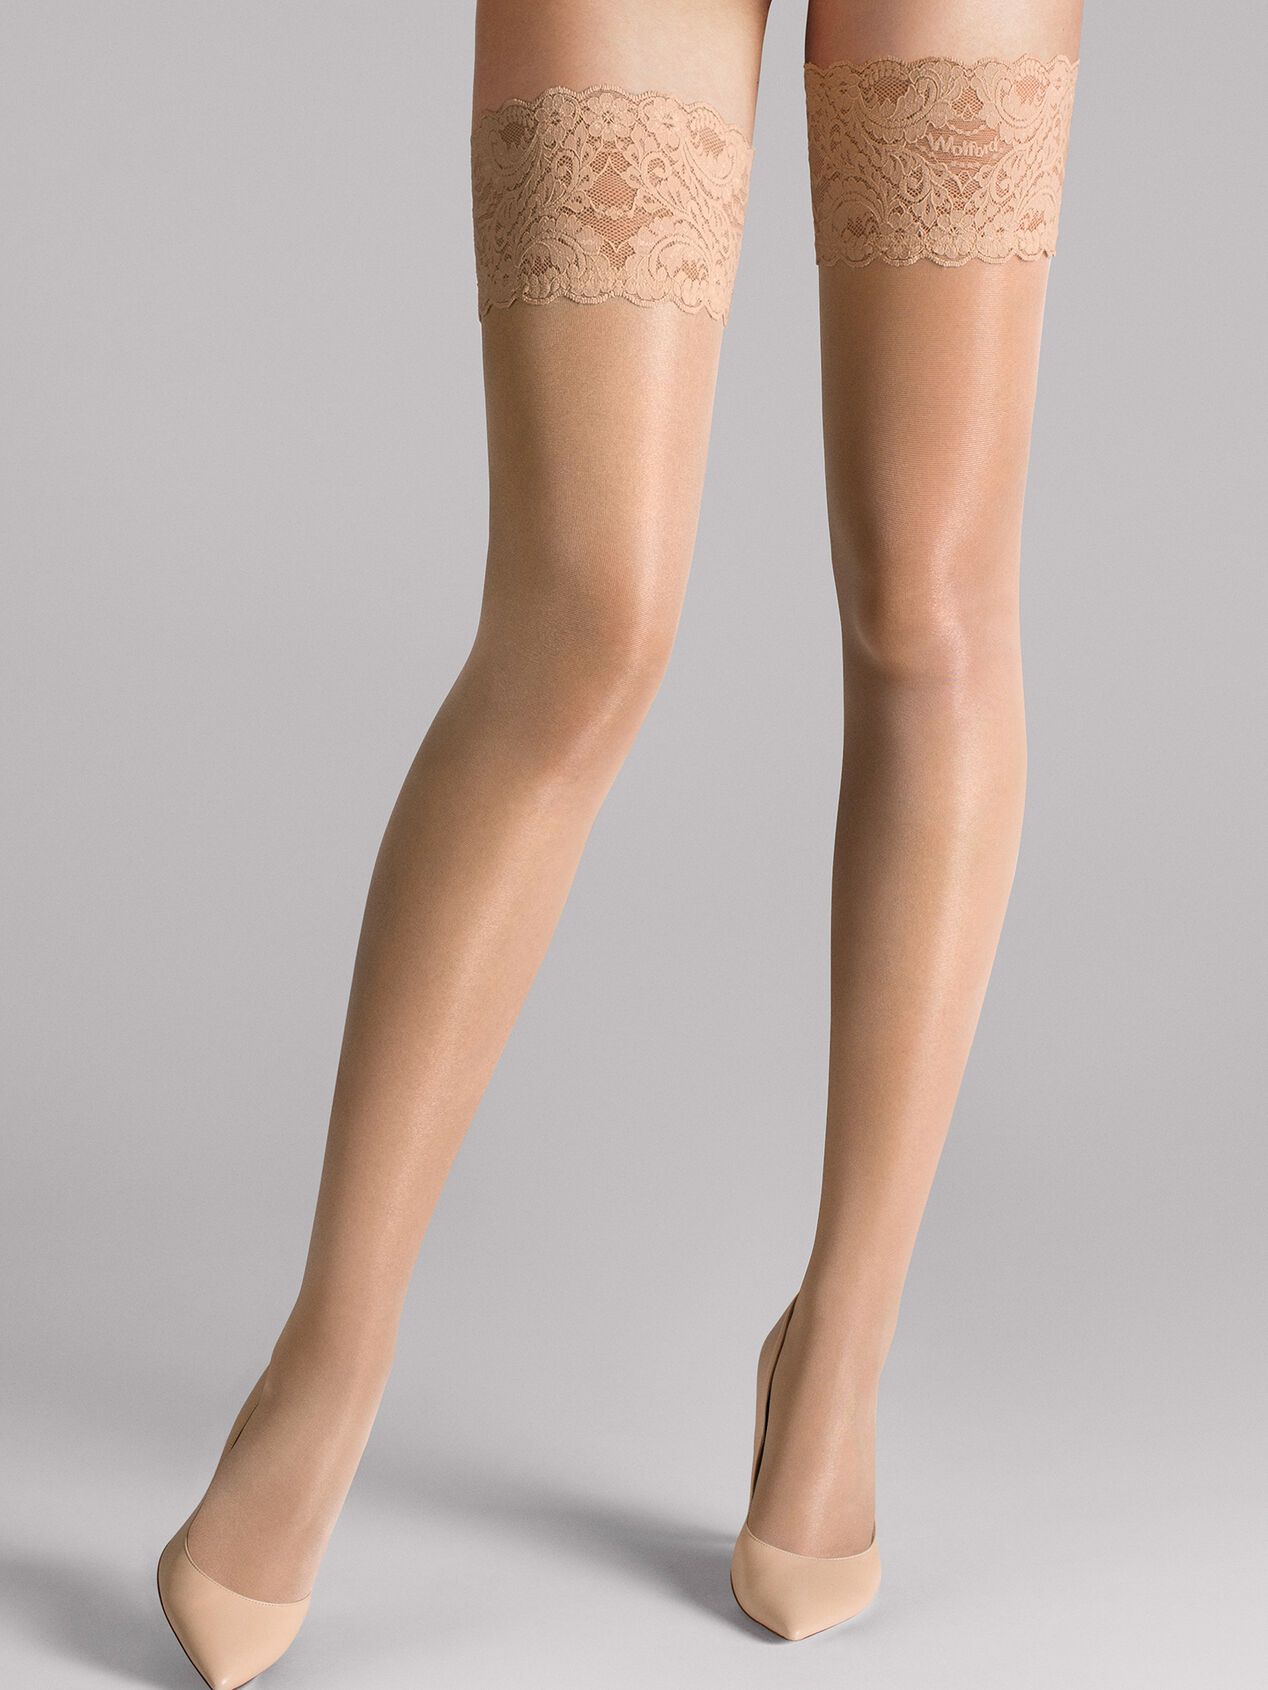 dce5d831d Sexy Tights Lace Stocking